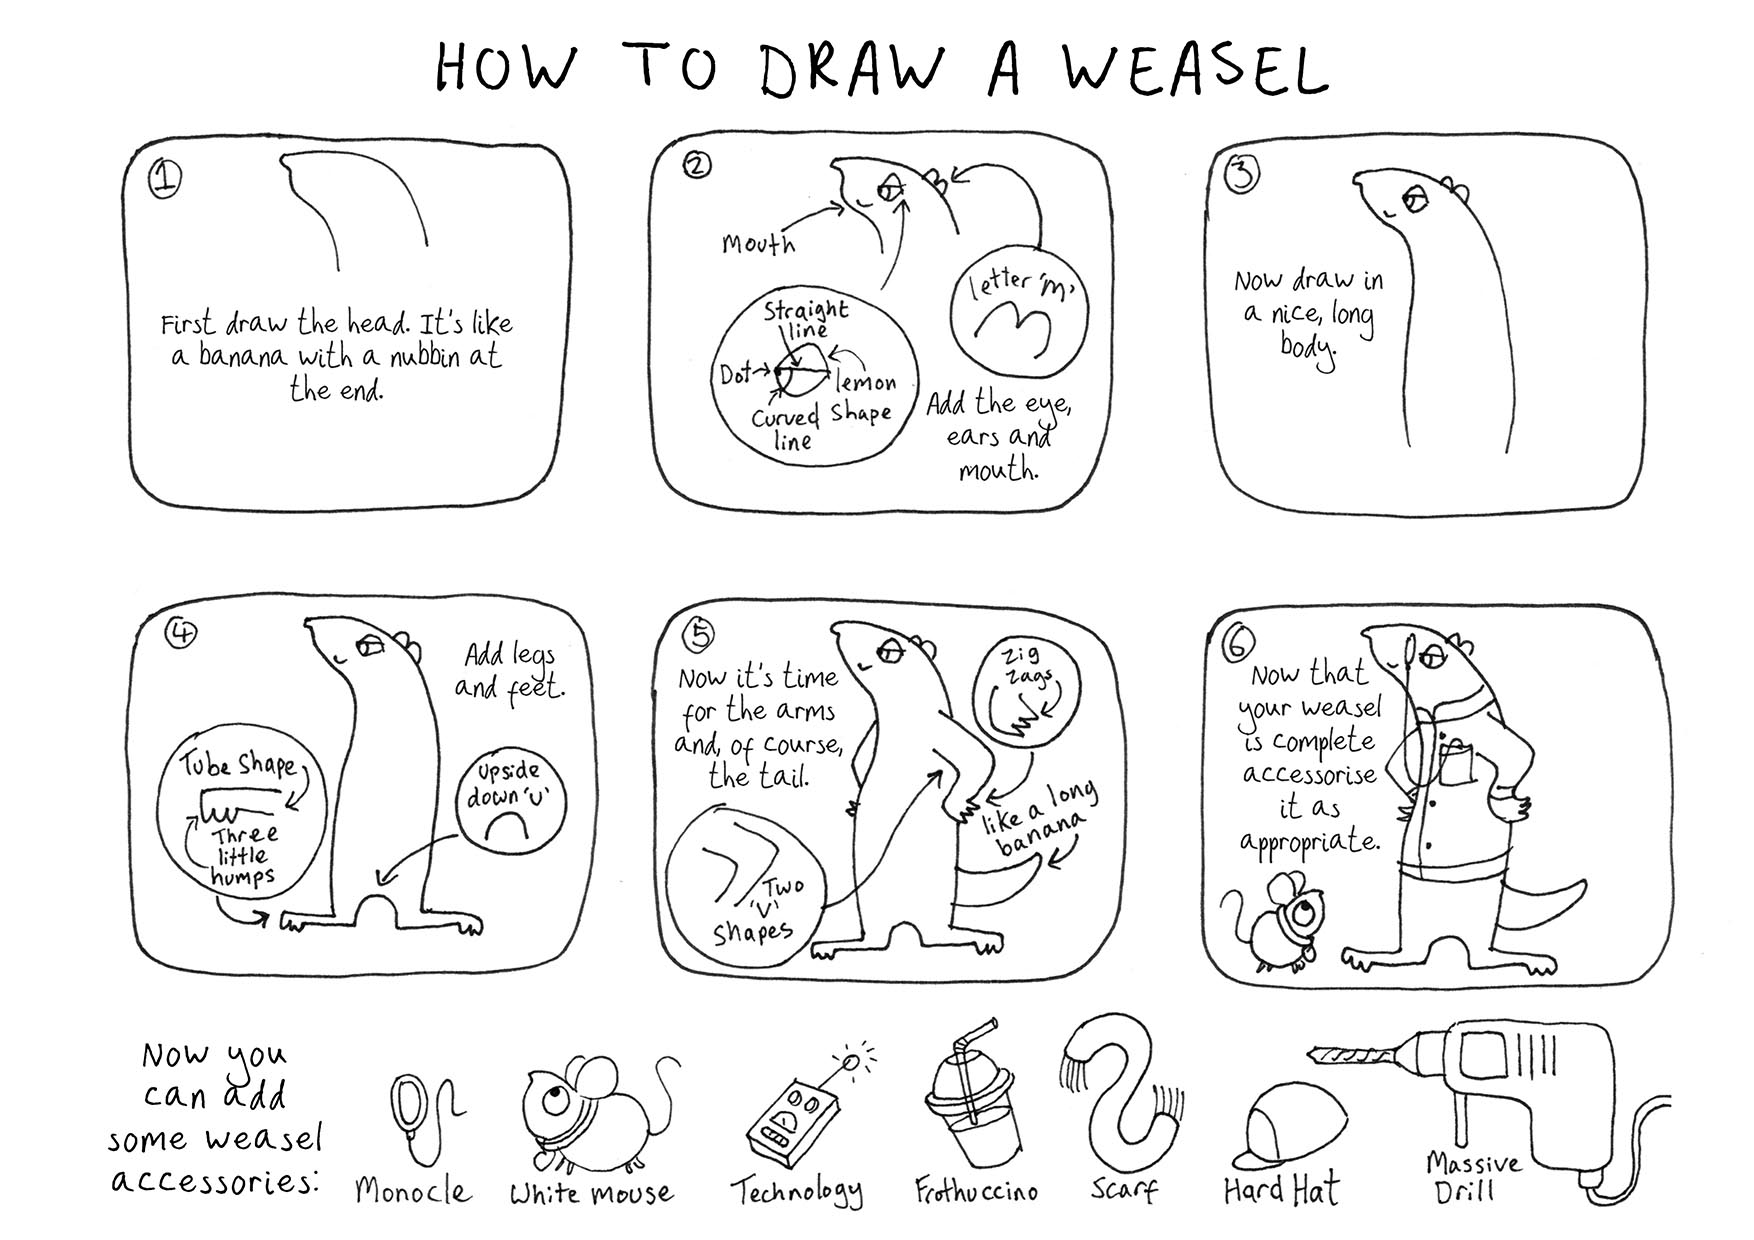 How to Draw a Weasel.jpg